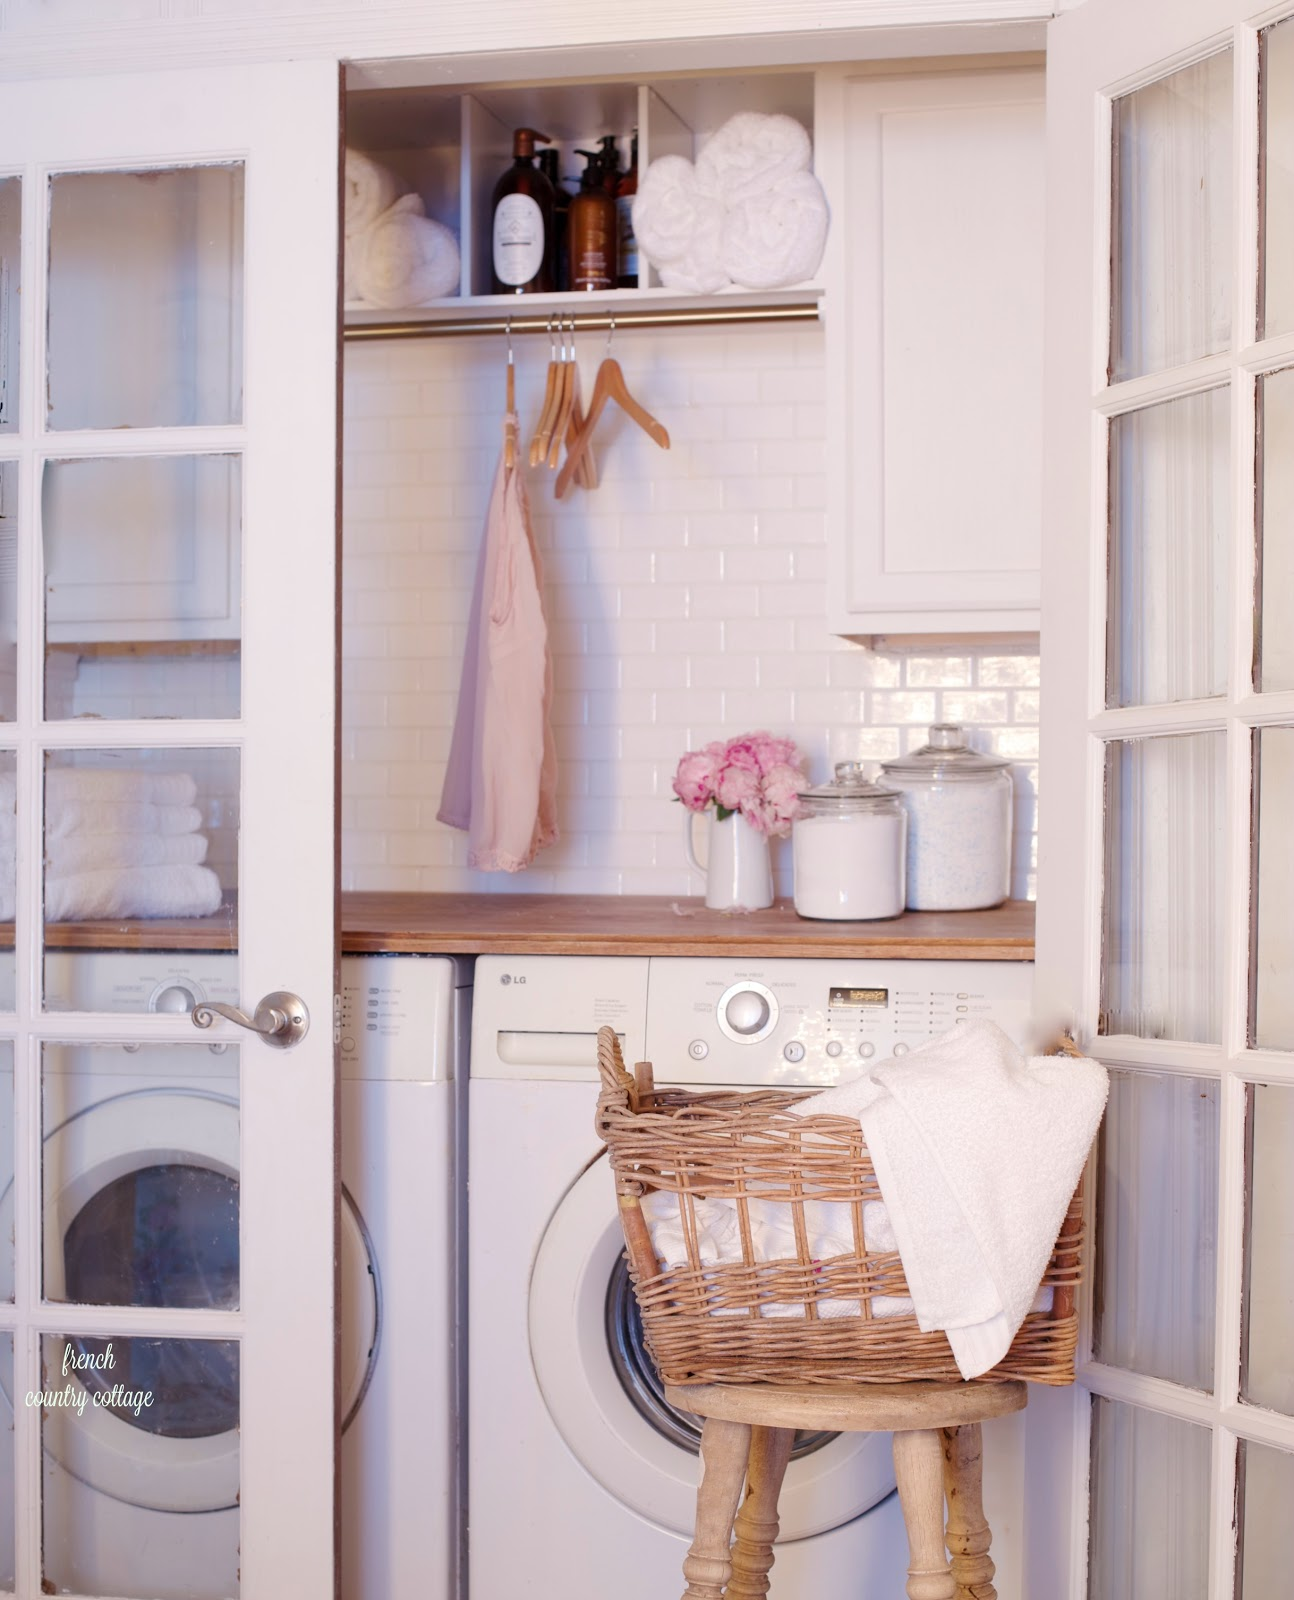 Vintage Style Laundry Room Renovation With French Doors Butcher Block